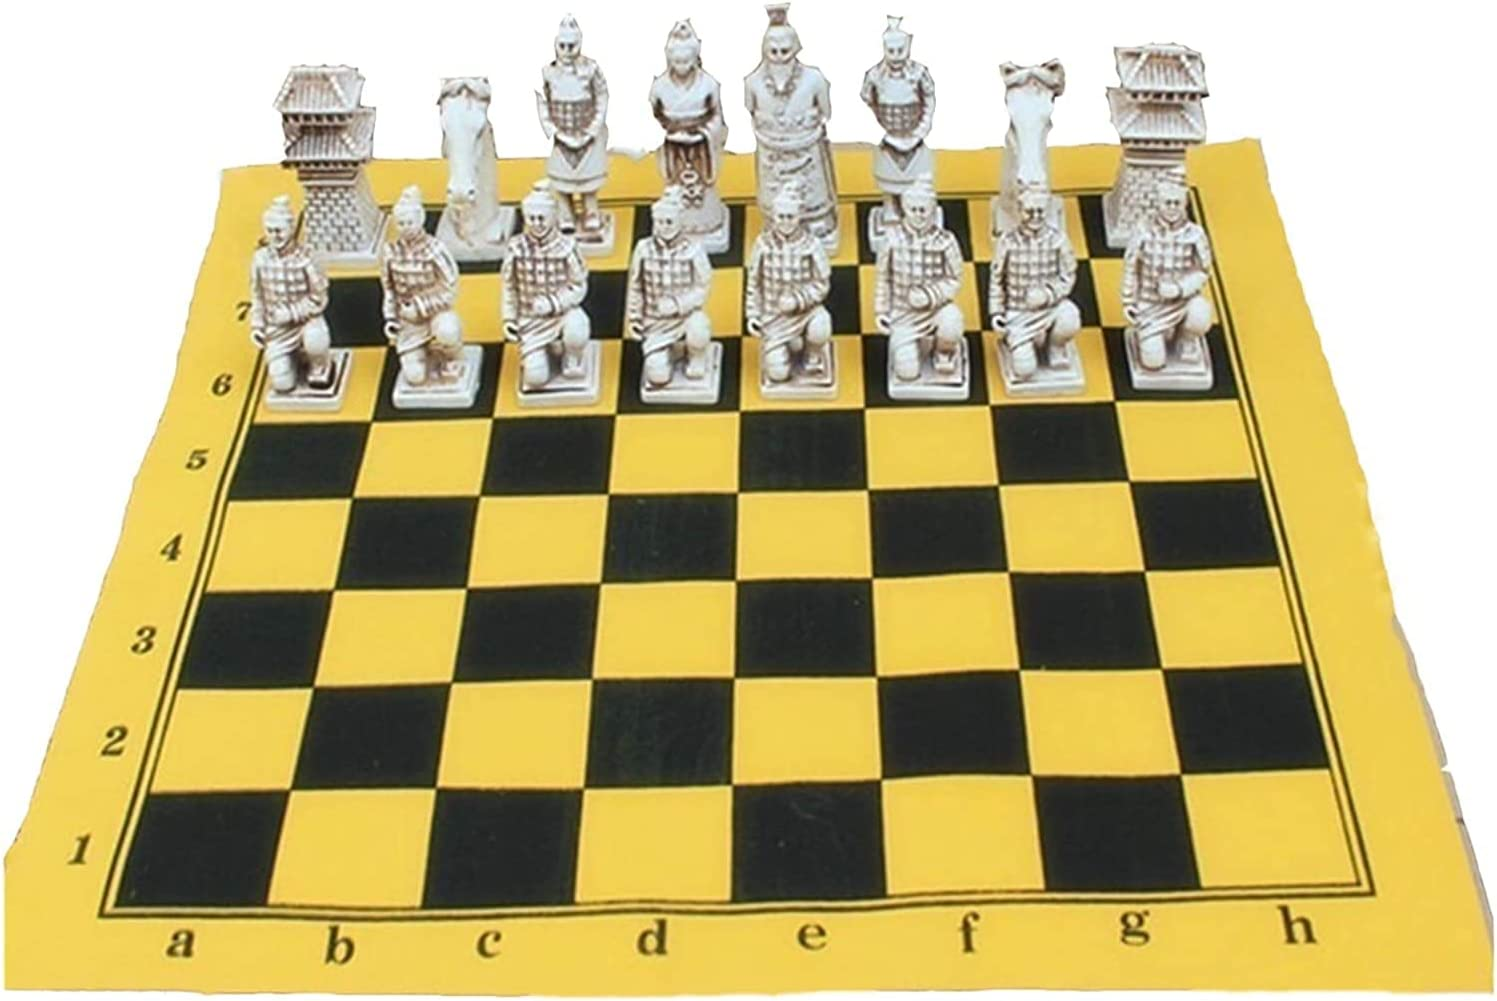 ZHZHUANG Chess Set Leather Resin Rapid rise Limited price sale Pieces